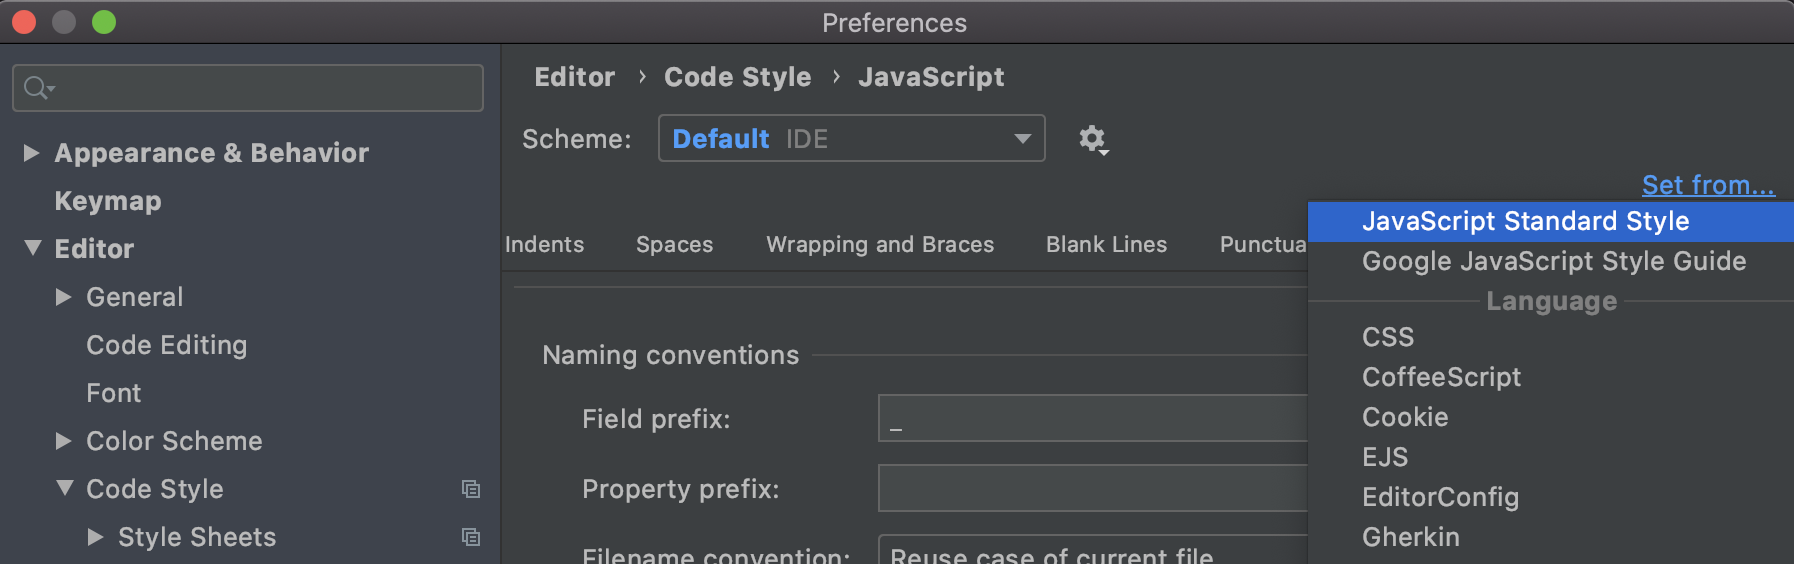 select-js-standard-style-in-preferences